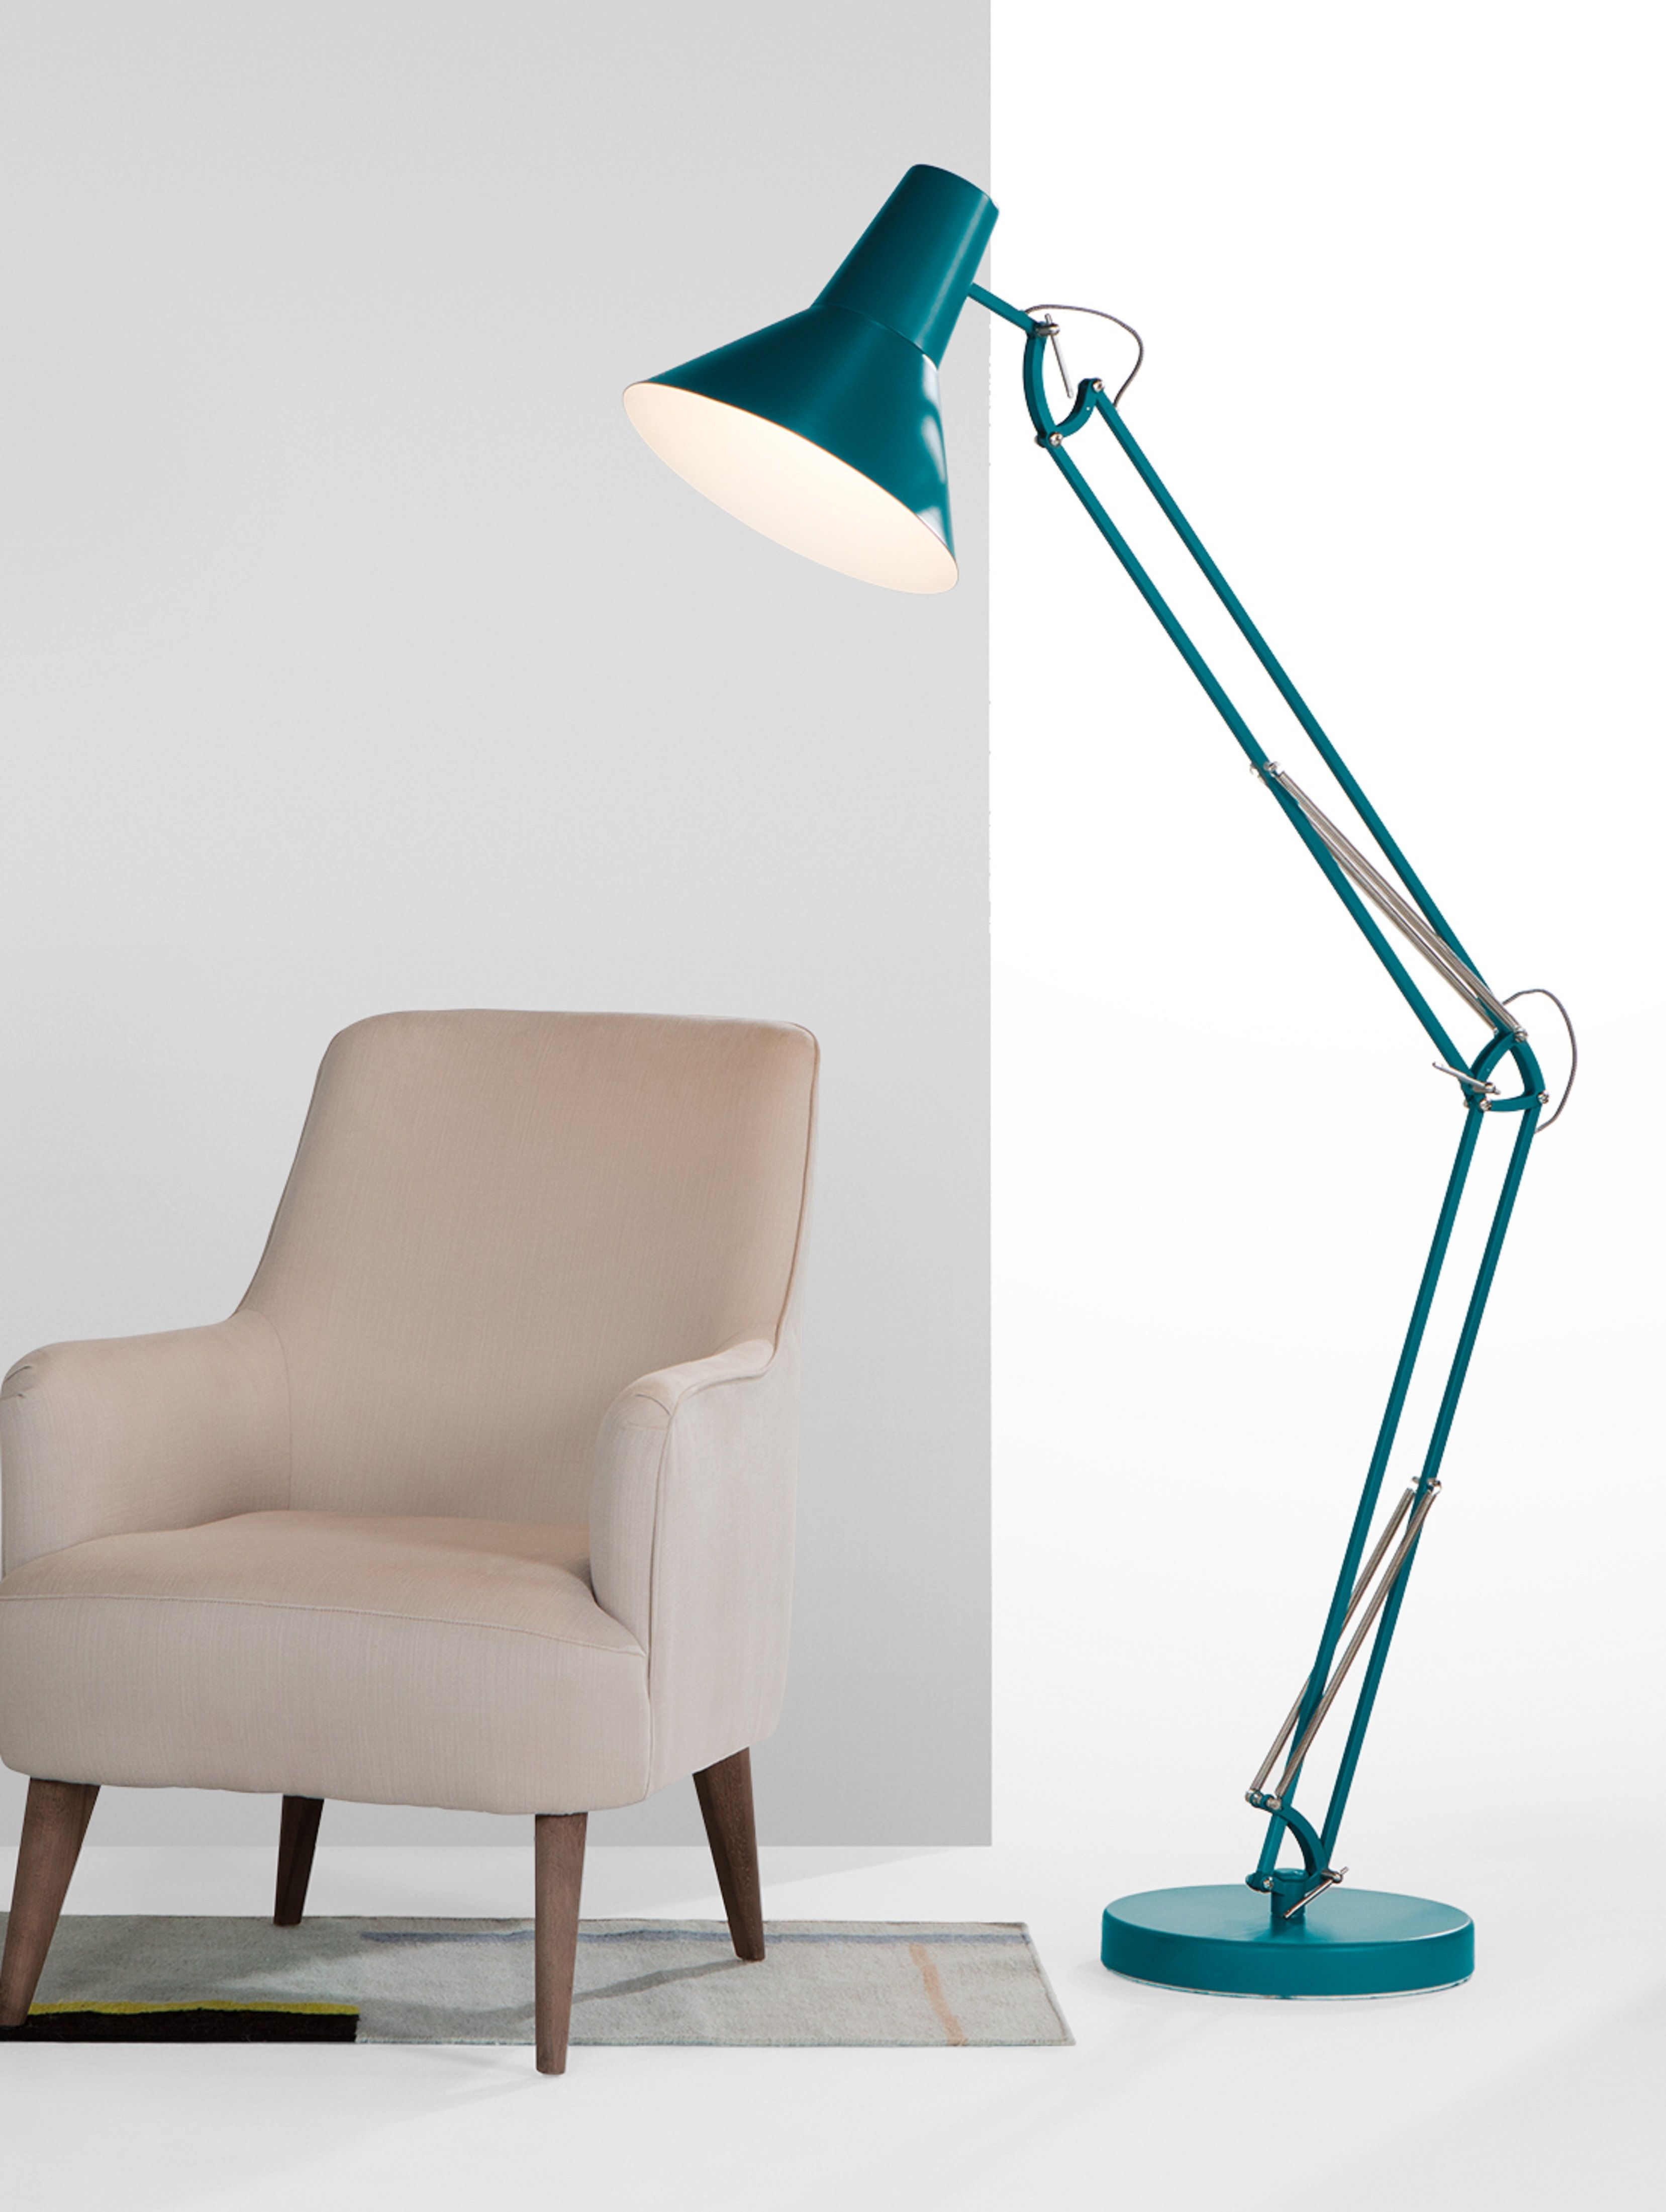 Teal green giant floor lamp bronx pinterest floor lamp teal bronx giant floor lamp matt teal set it to task over your desk or reading corner or use the flexible arm and shade to point it towards a wall for ambient aloadofball Image collections